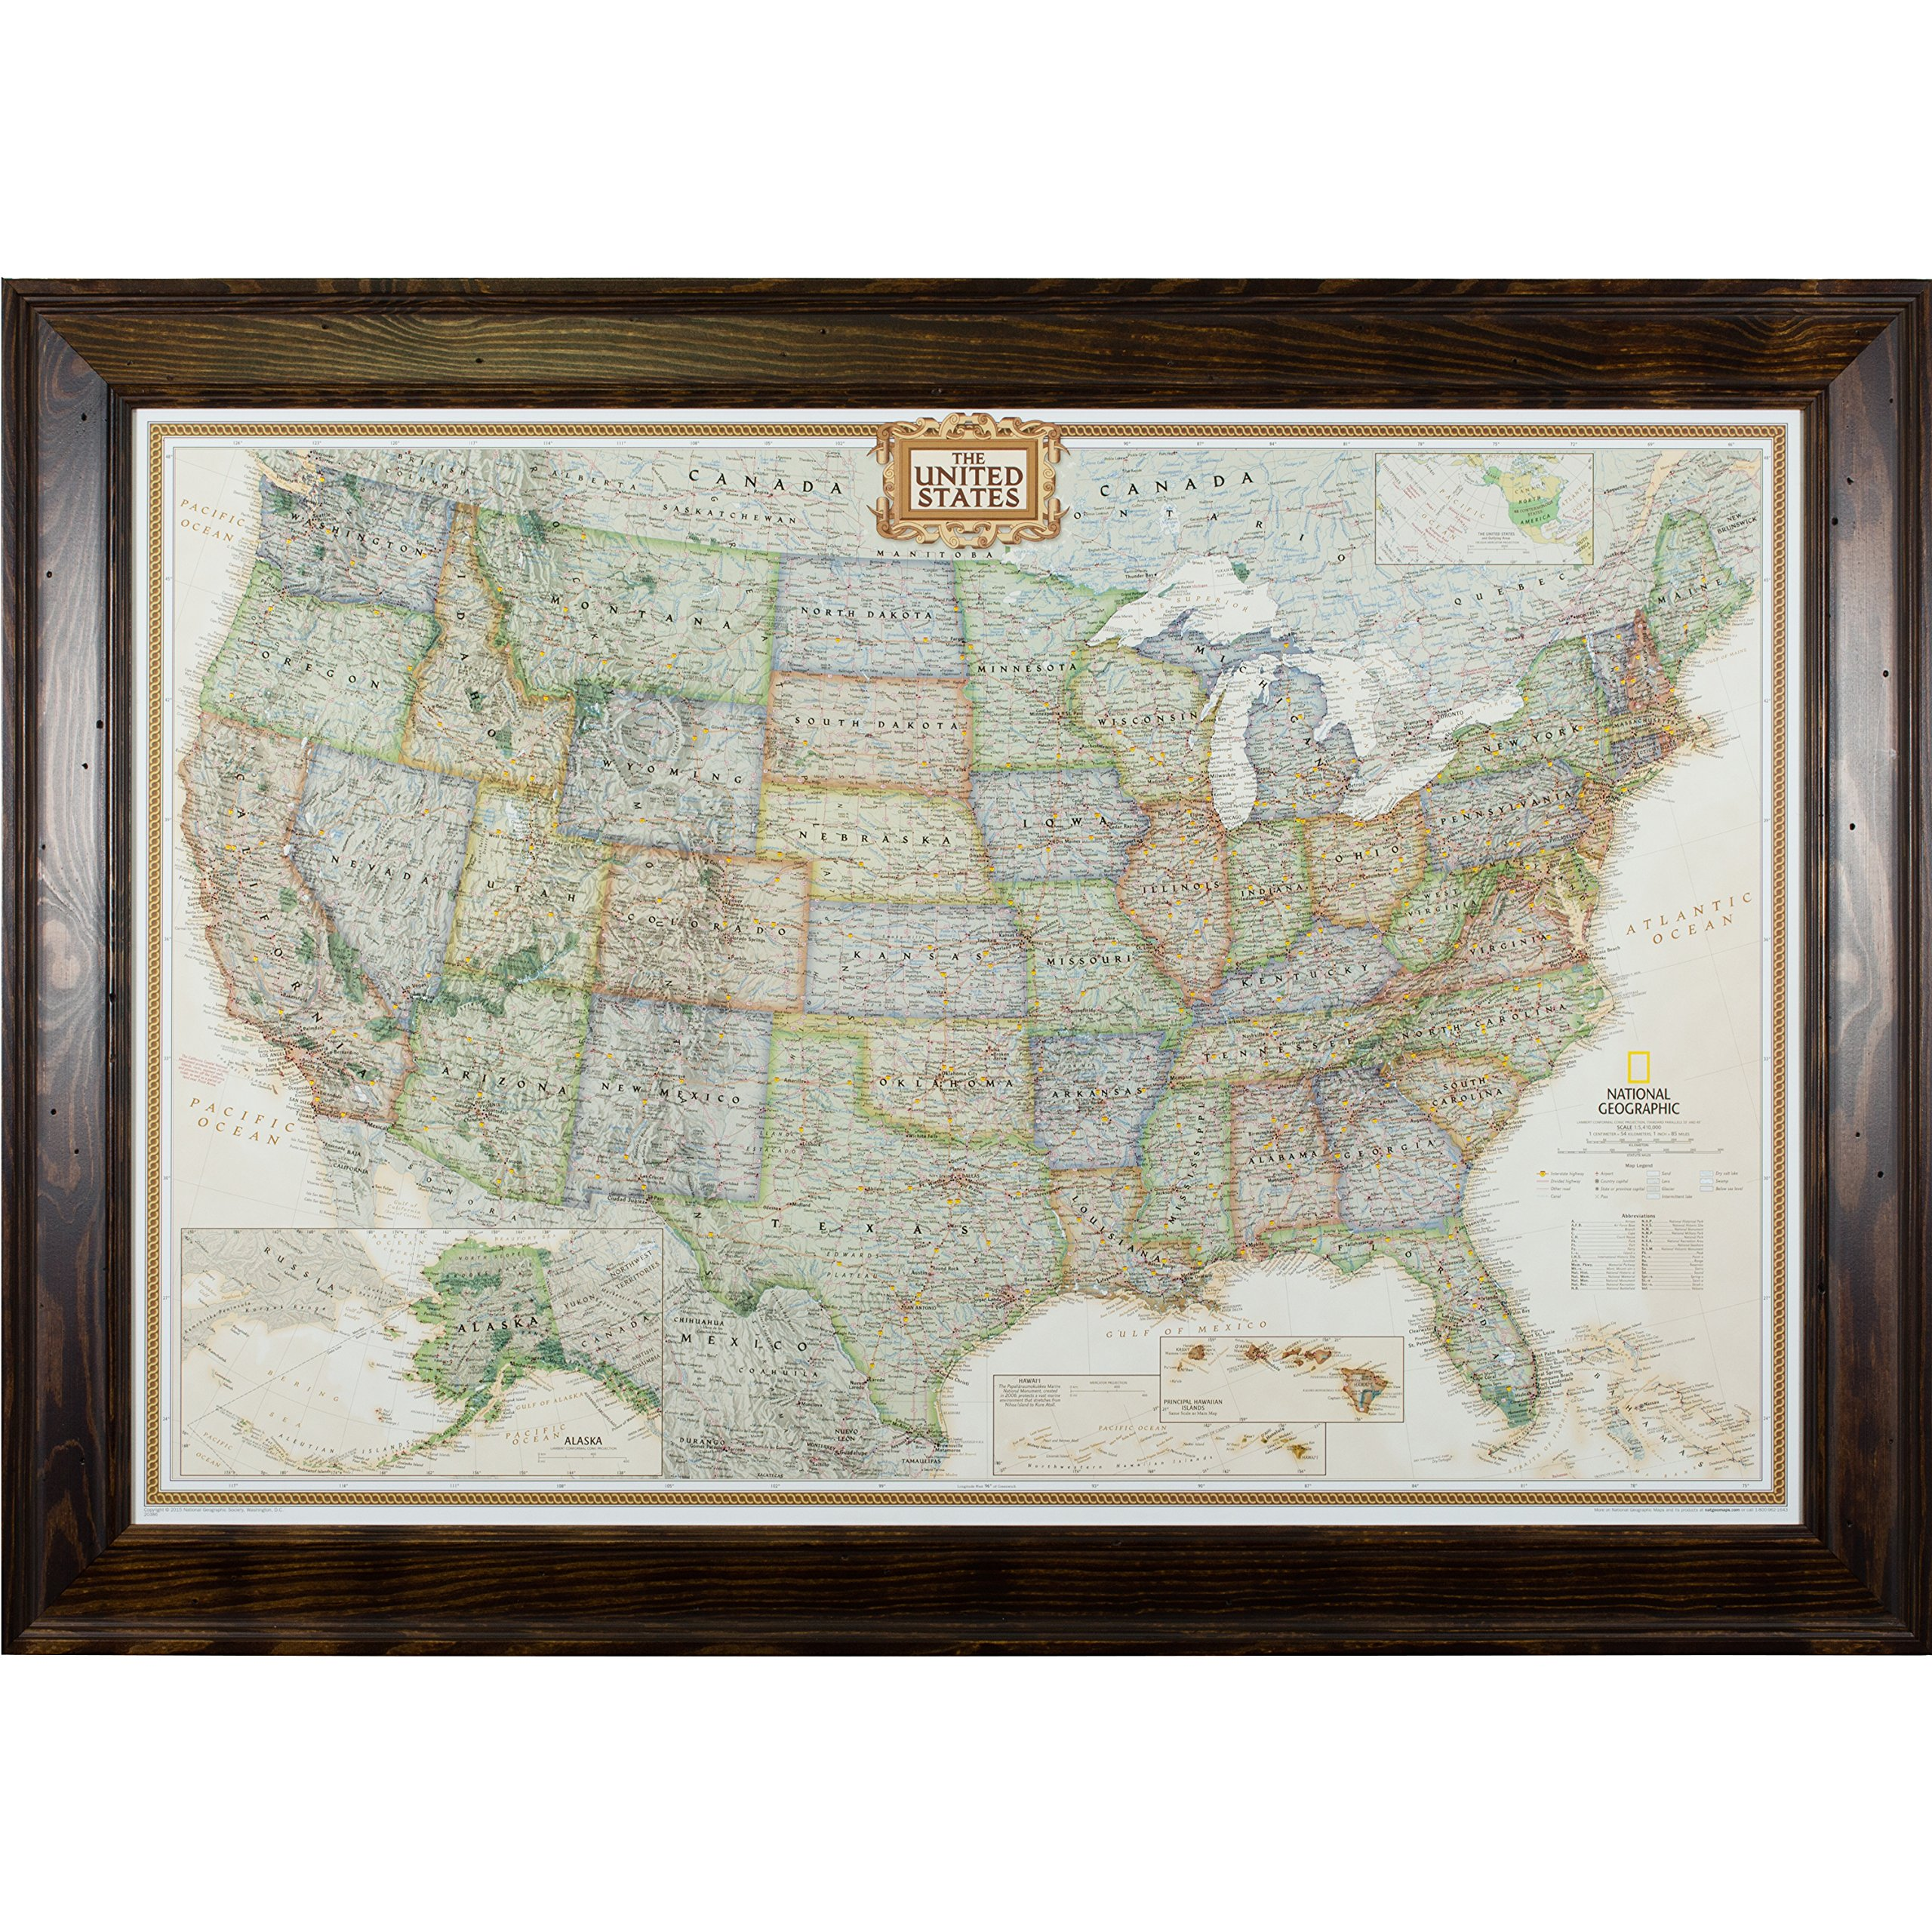 Craig Frames Wayfarer, Executive United States Push Pin Travel Map, Distressed Dark Brown Frame and Pins, 24 by 36-Inch